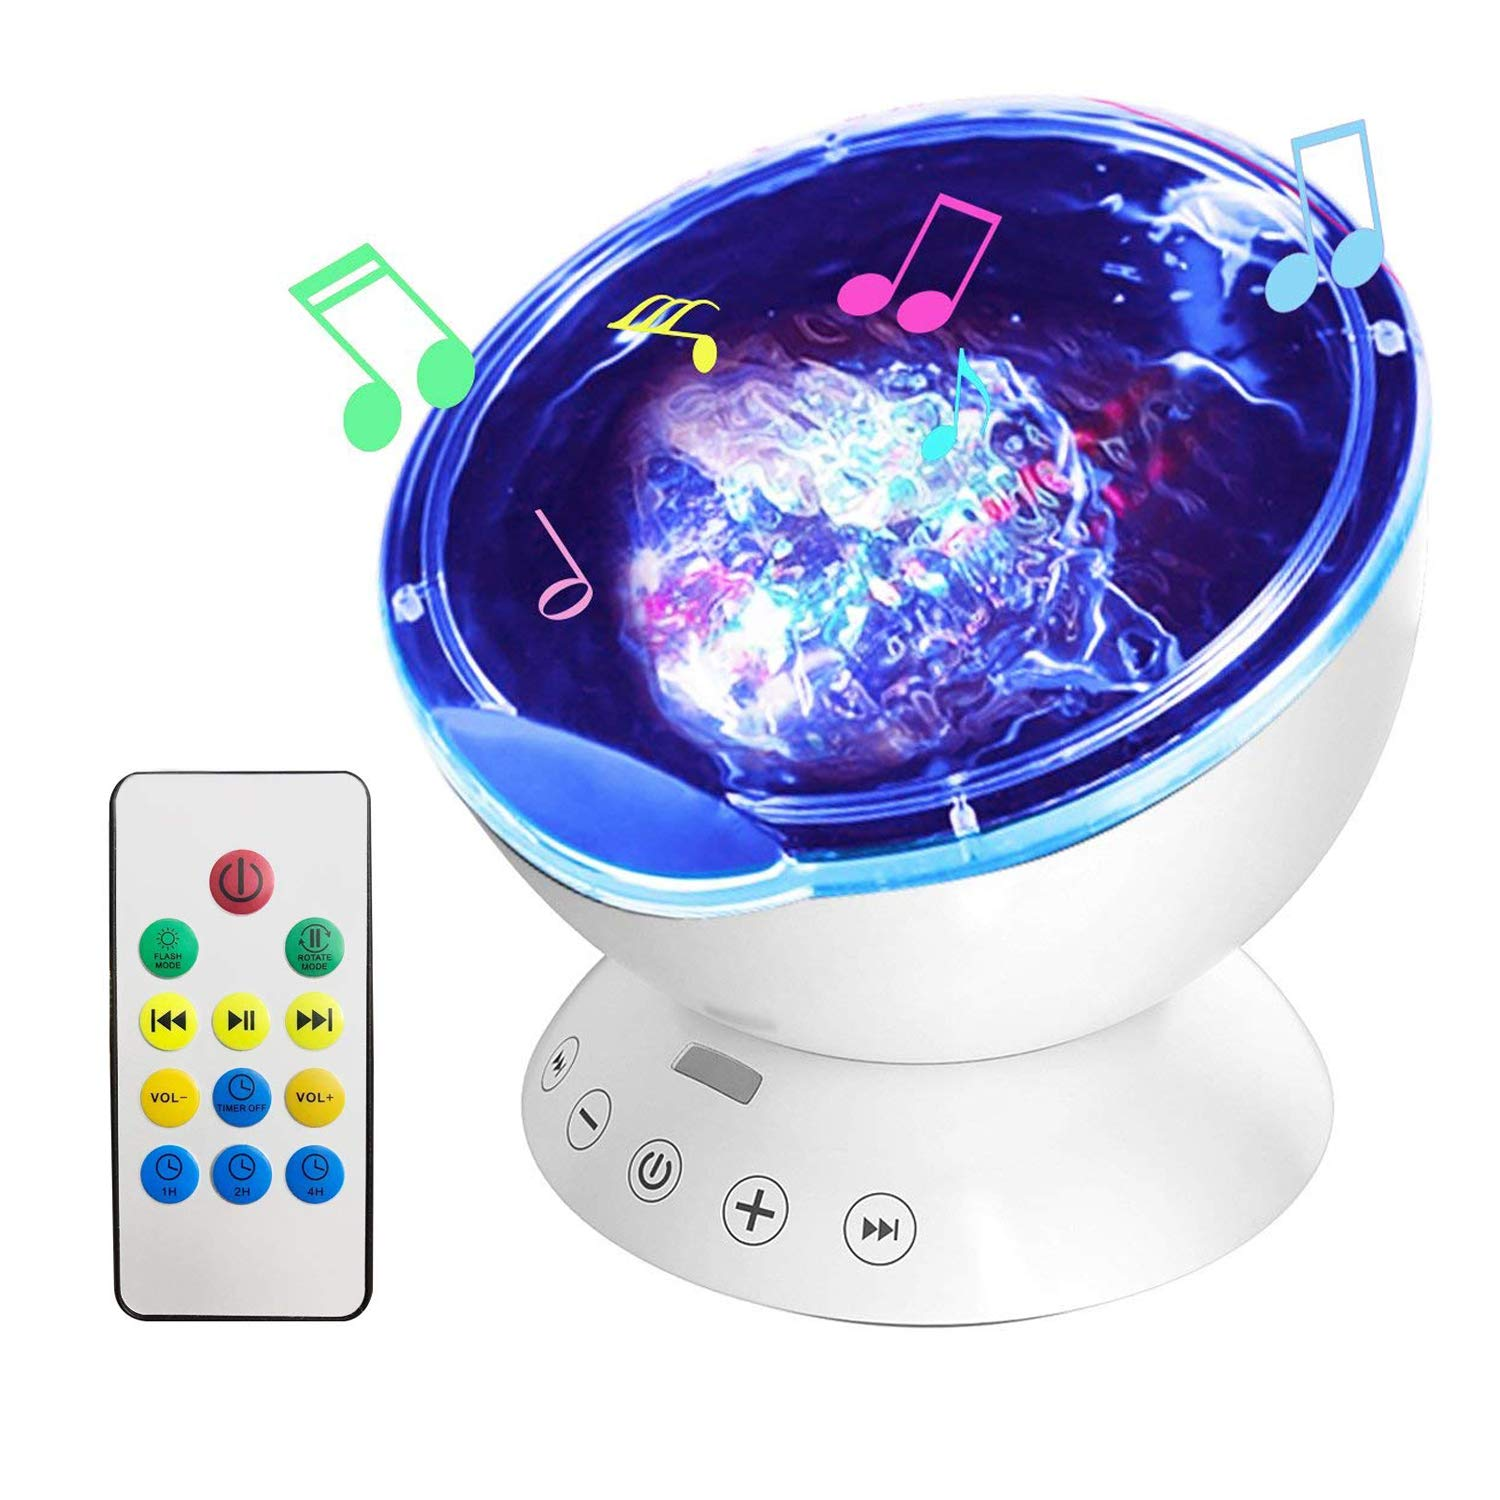 AOGUERBE Night Light Projector Ocean Wave Projector Lamp Speaker 12 LED Remote Control Built-in Music Player Lights Star Nightlight in Bedroom Living Room Party for Nursery Baby Kids Children [Black] [Energy Class A+] [Energy Class A+]